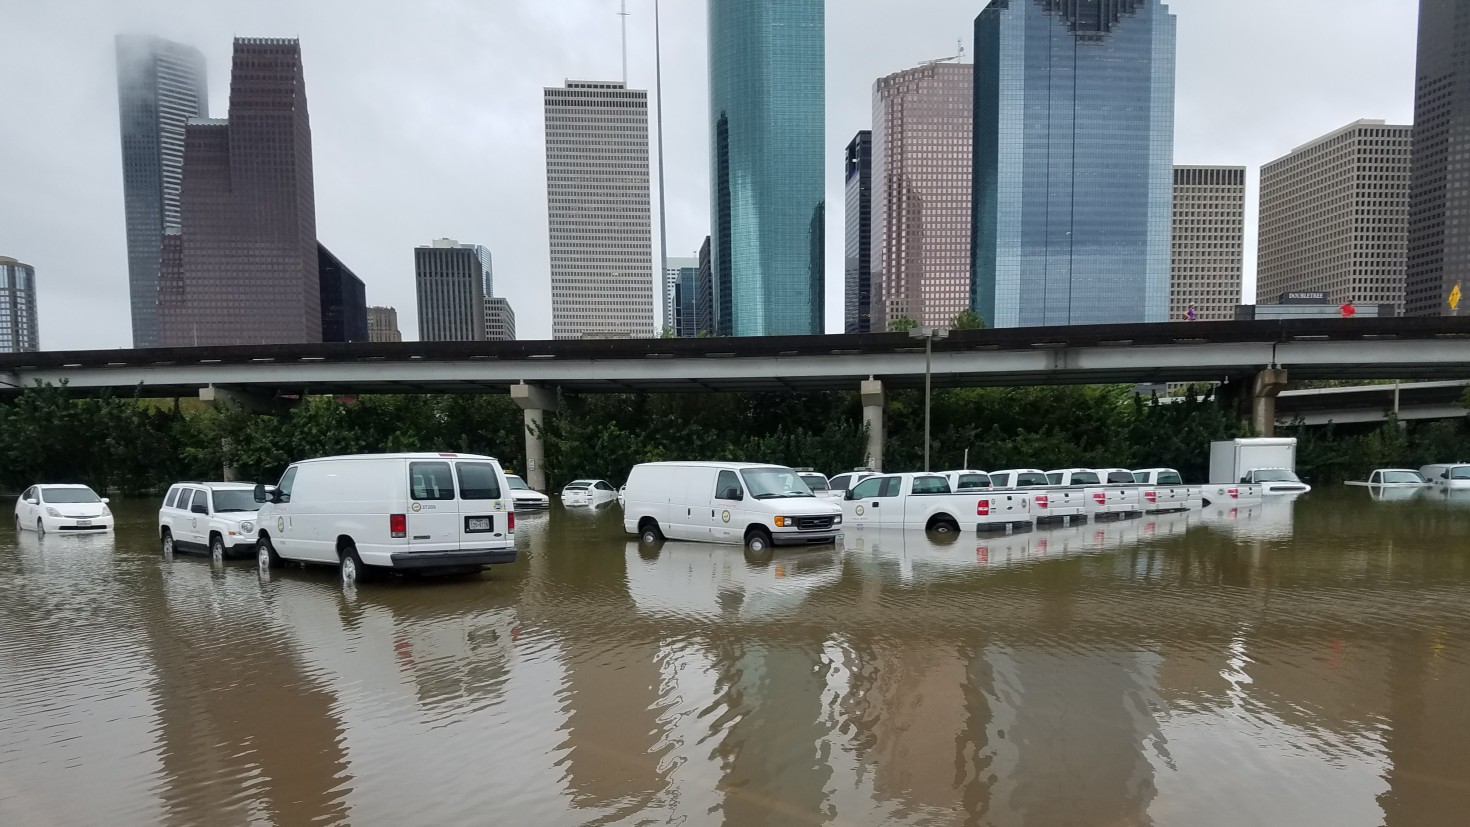 hurricane Harvey inundated big parts of houston but also caused economic losses elsewhere in the US and the world. Photo byTom Fitzpatrick, FUGRO, via WMO on flickr